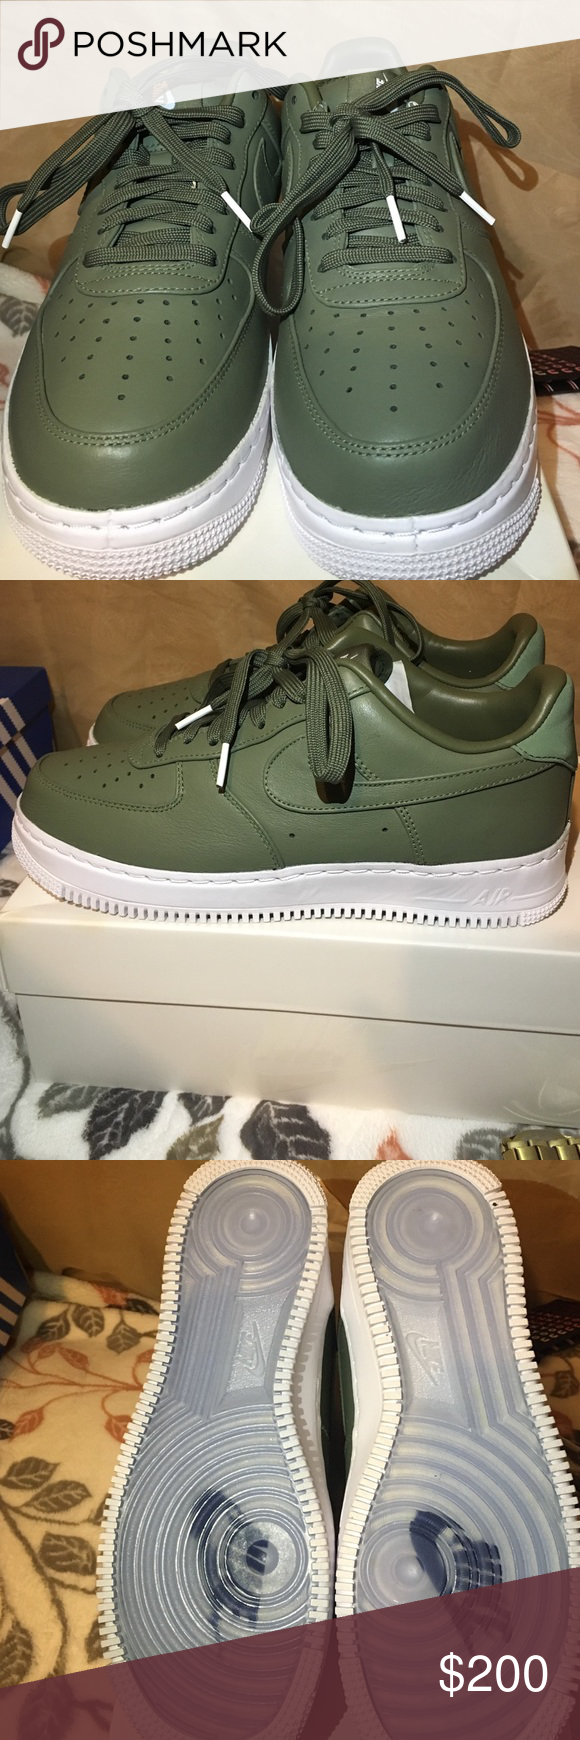 best sneakers e13e8 c3ee9 Nike Air Force One Brand new, never worn. Size  8 Men, 10 Woman Color  Olive  Green Nike Shoes Sneakers